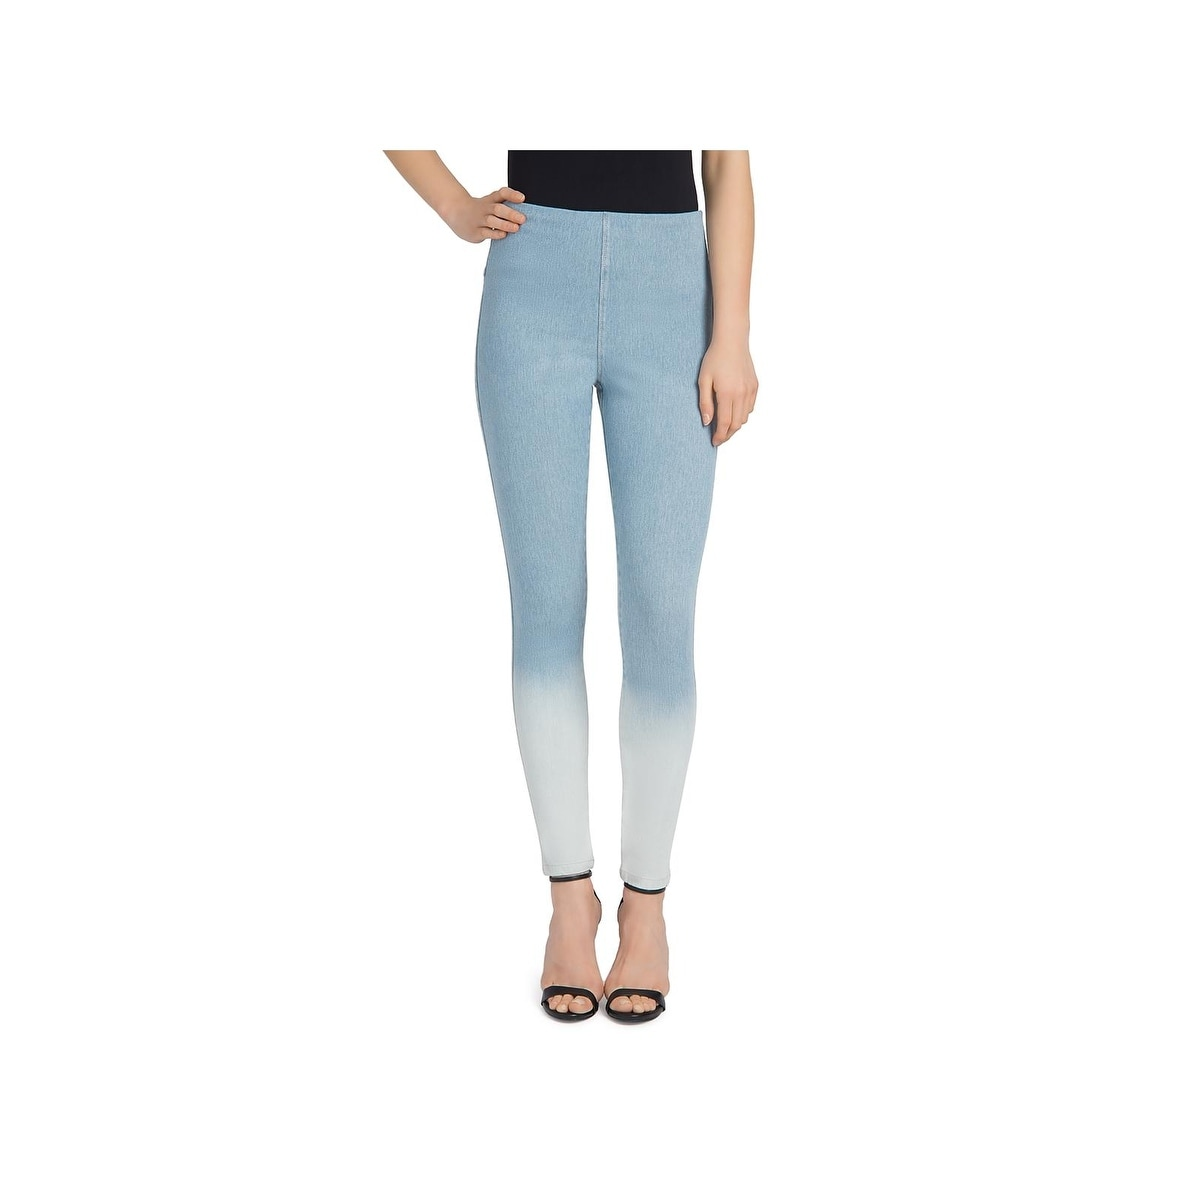 de2436b34f838 Shop Lysse Leggings Womens Jeggings High Rise Ombre - Free Shipping On  Orders Over $45 - Overstock - 27193624